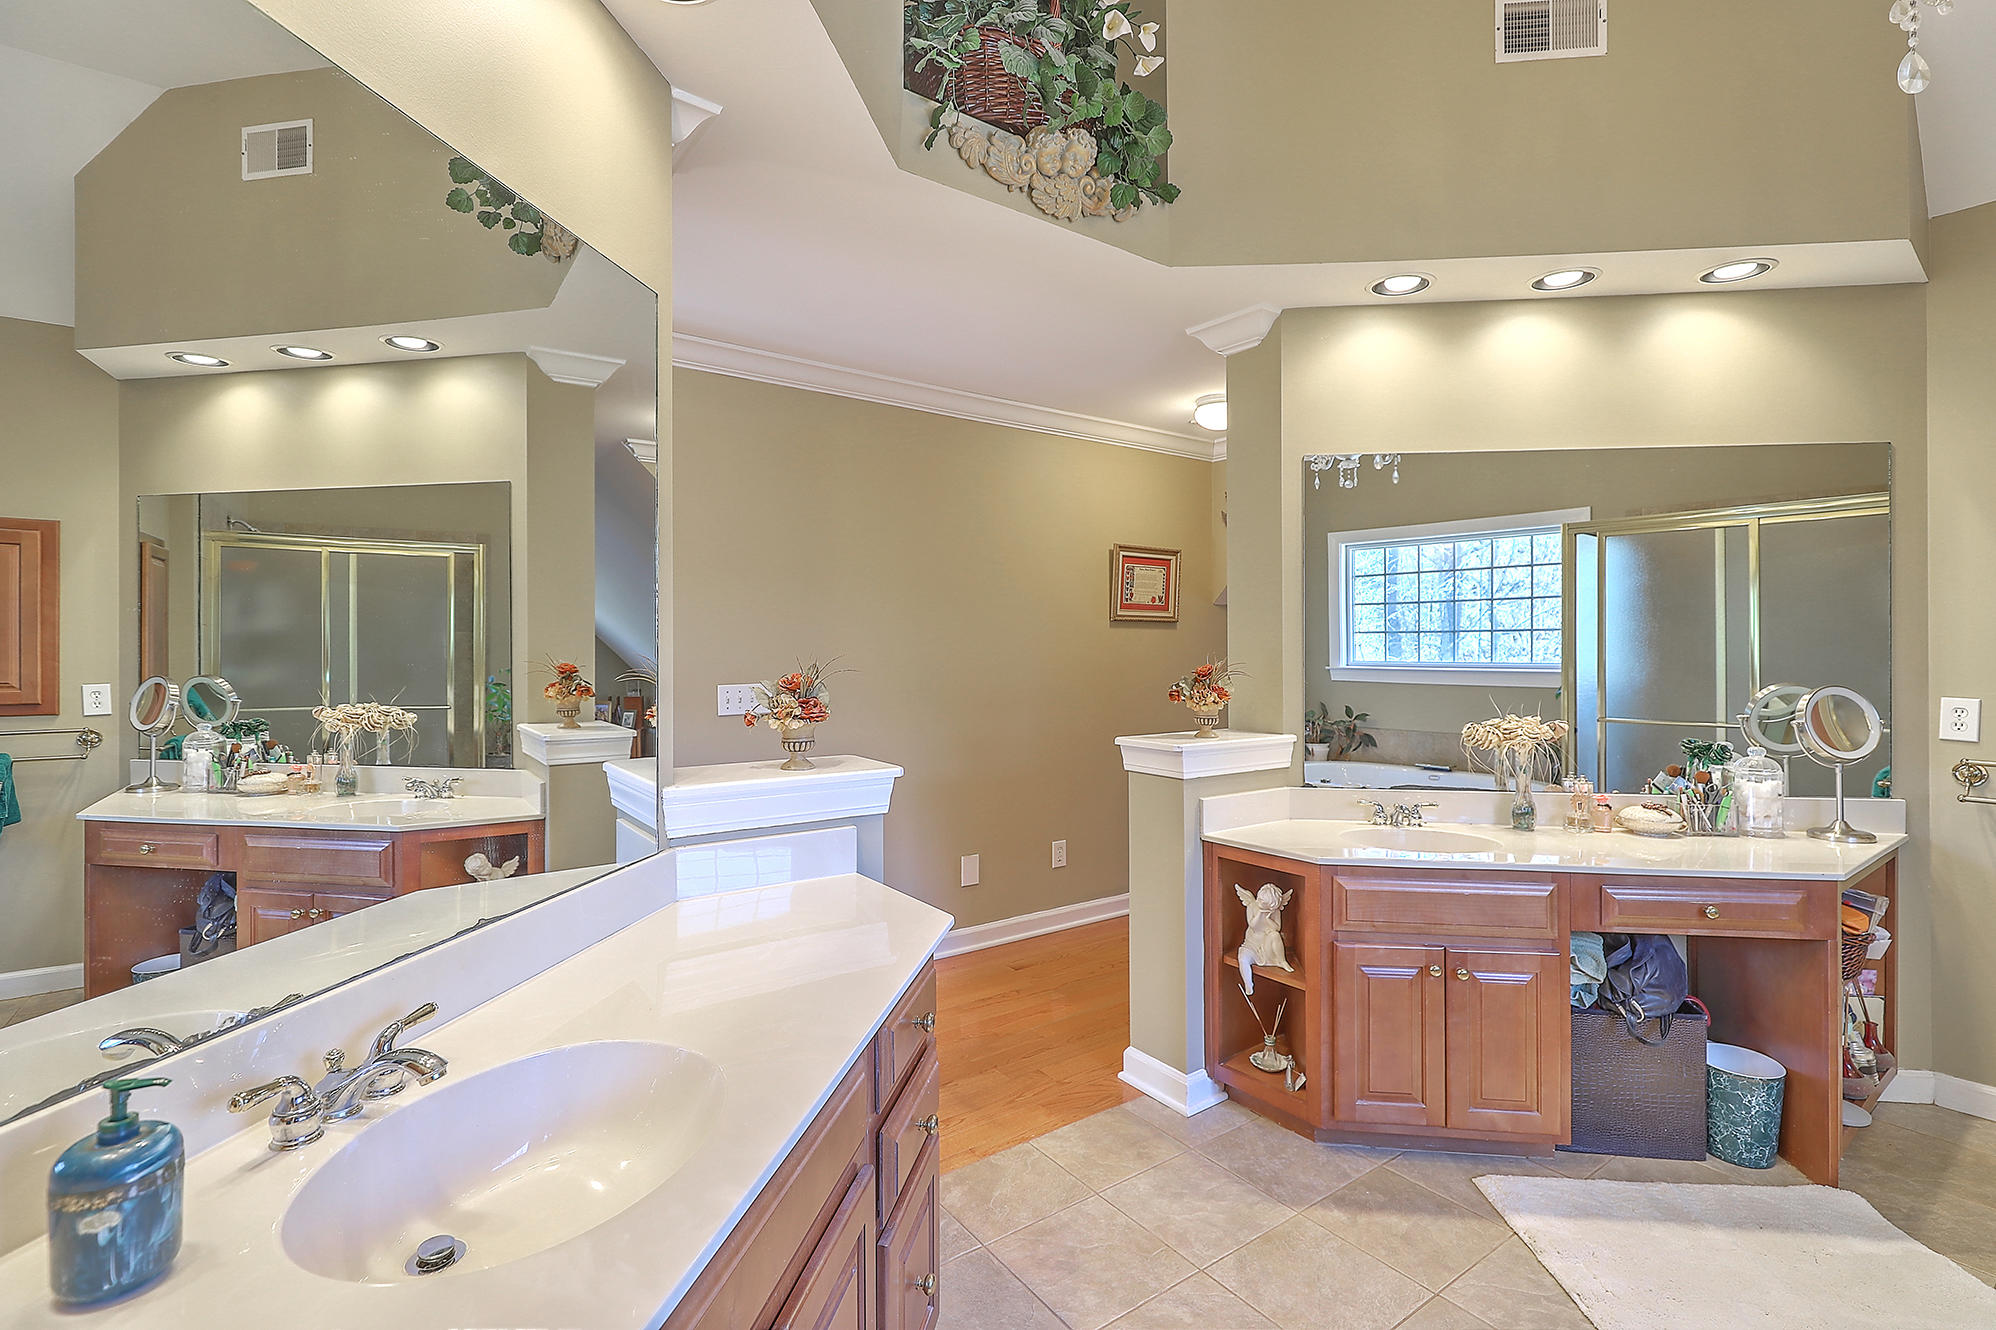 Dunes West Homes For Sale - 1784 Shell Ring Circle, Mount Pleasant, SC - 32